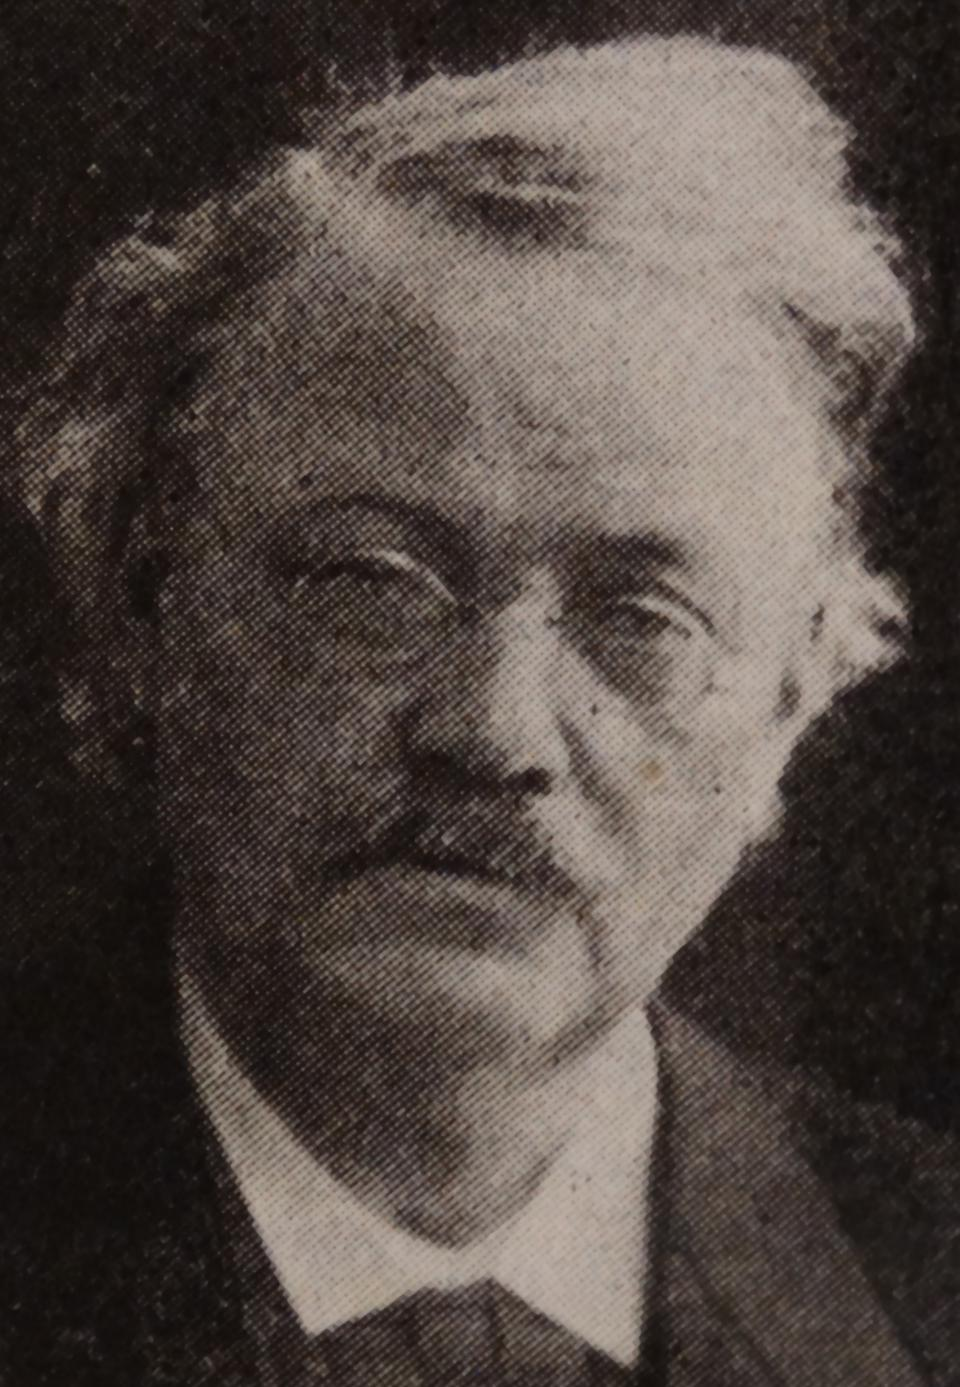 Knut Wicksell.